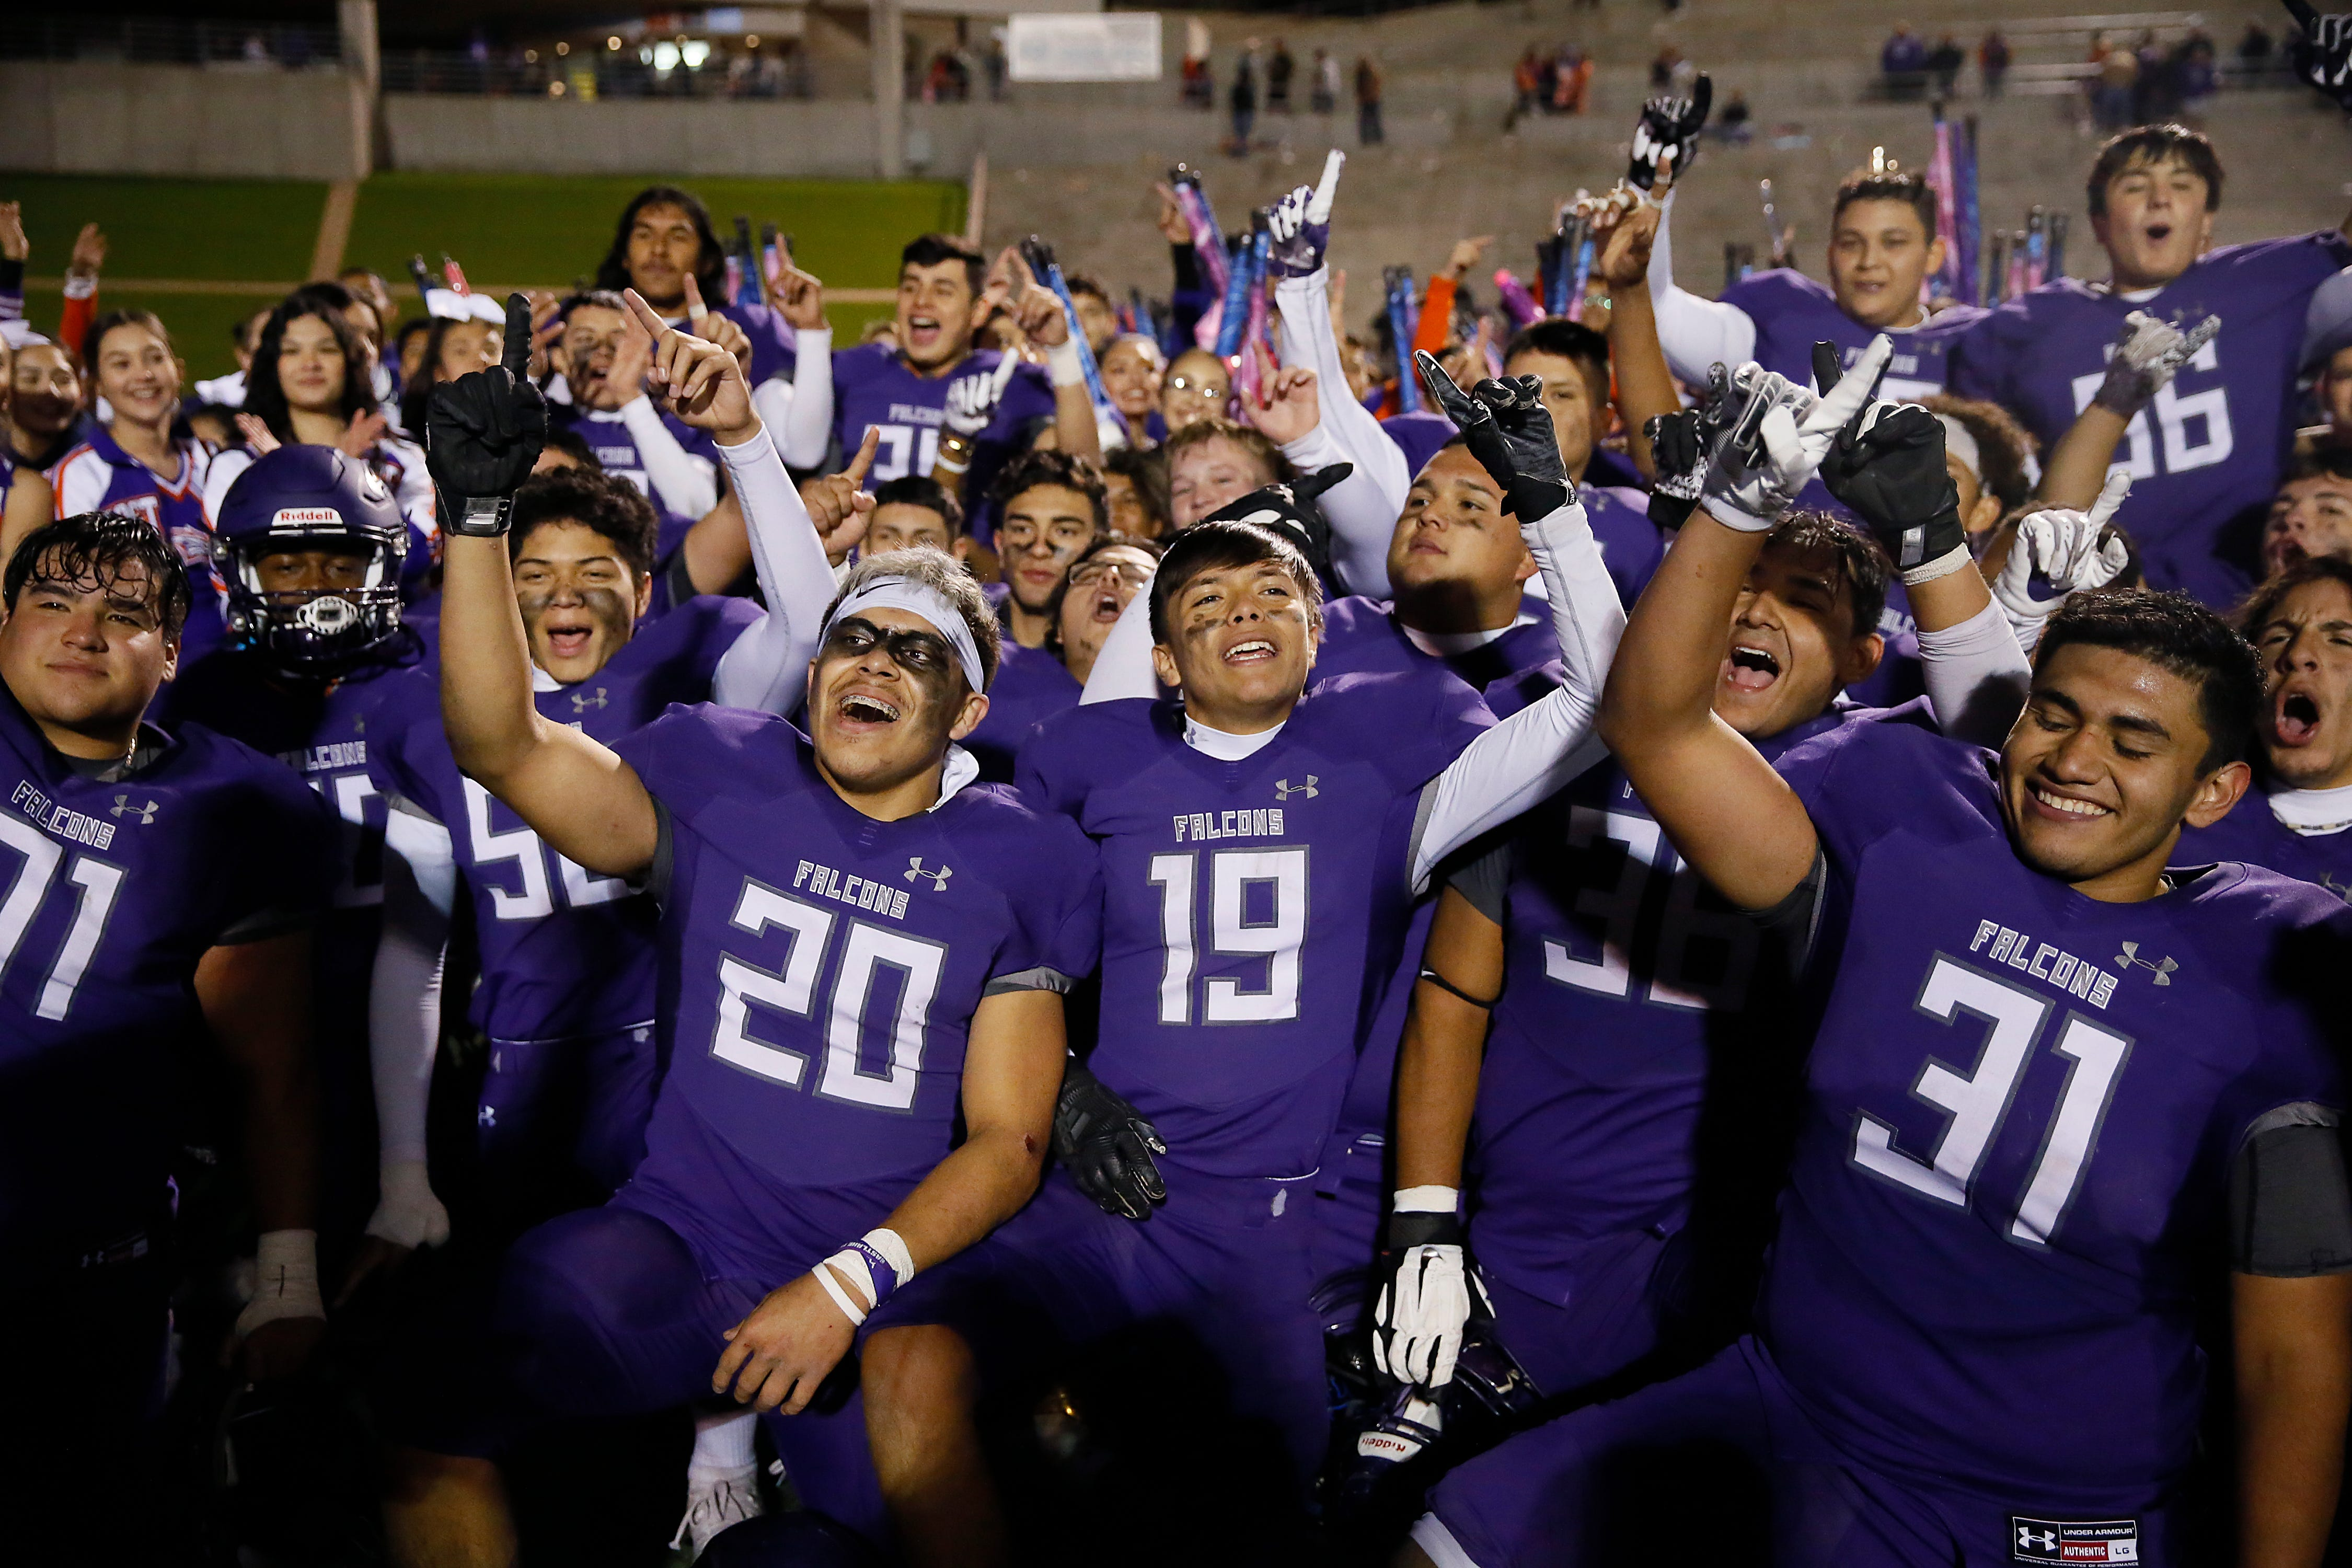 El Paso High School Football The Scoop And Predictions On Playoff Matchups